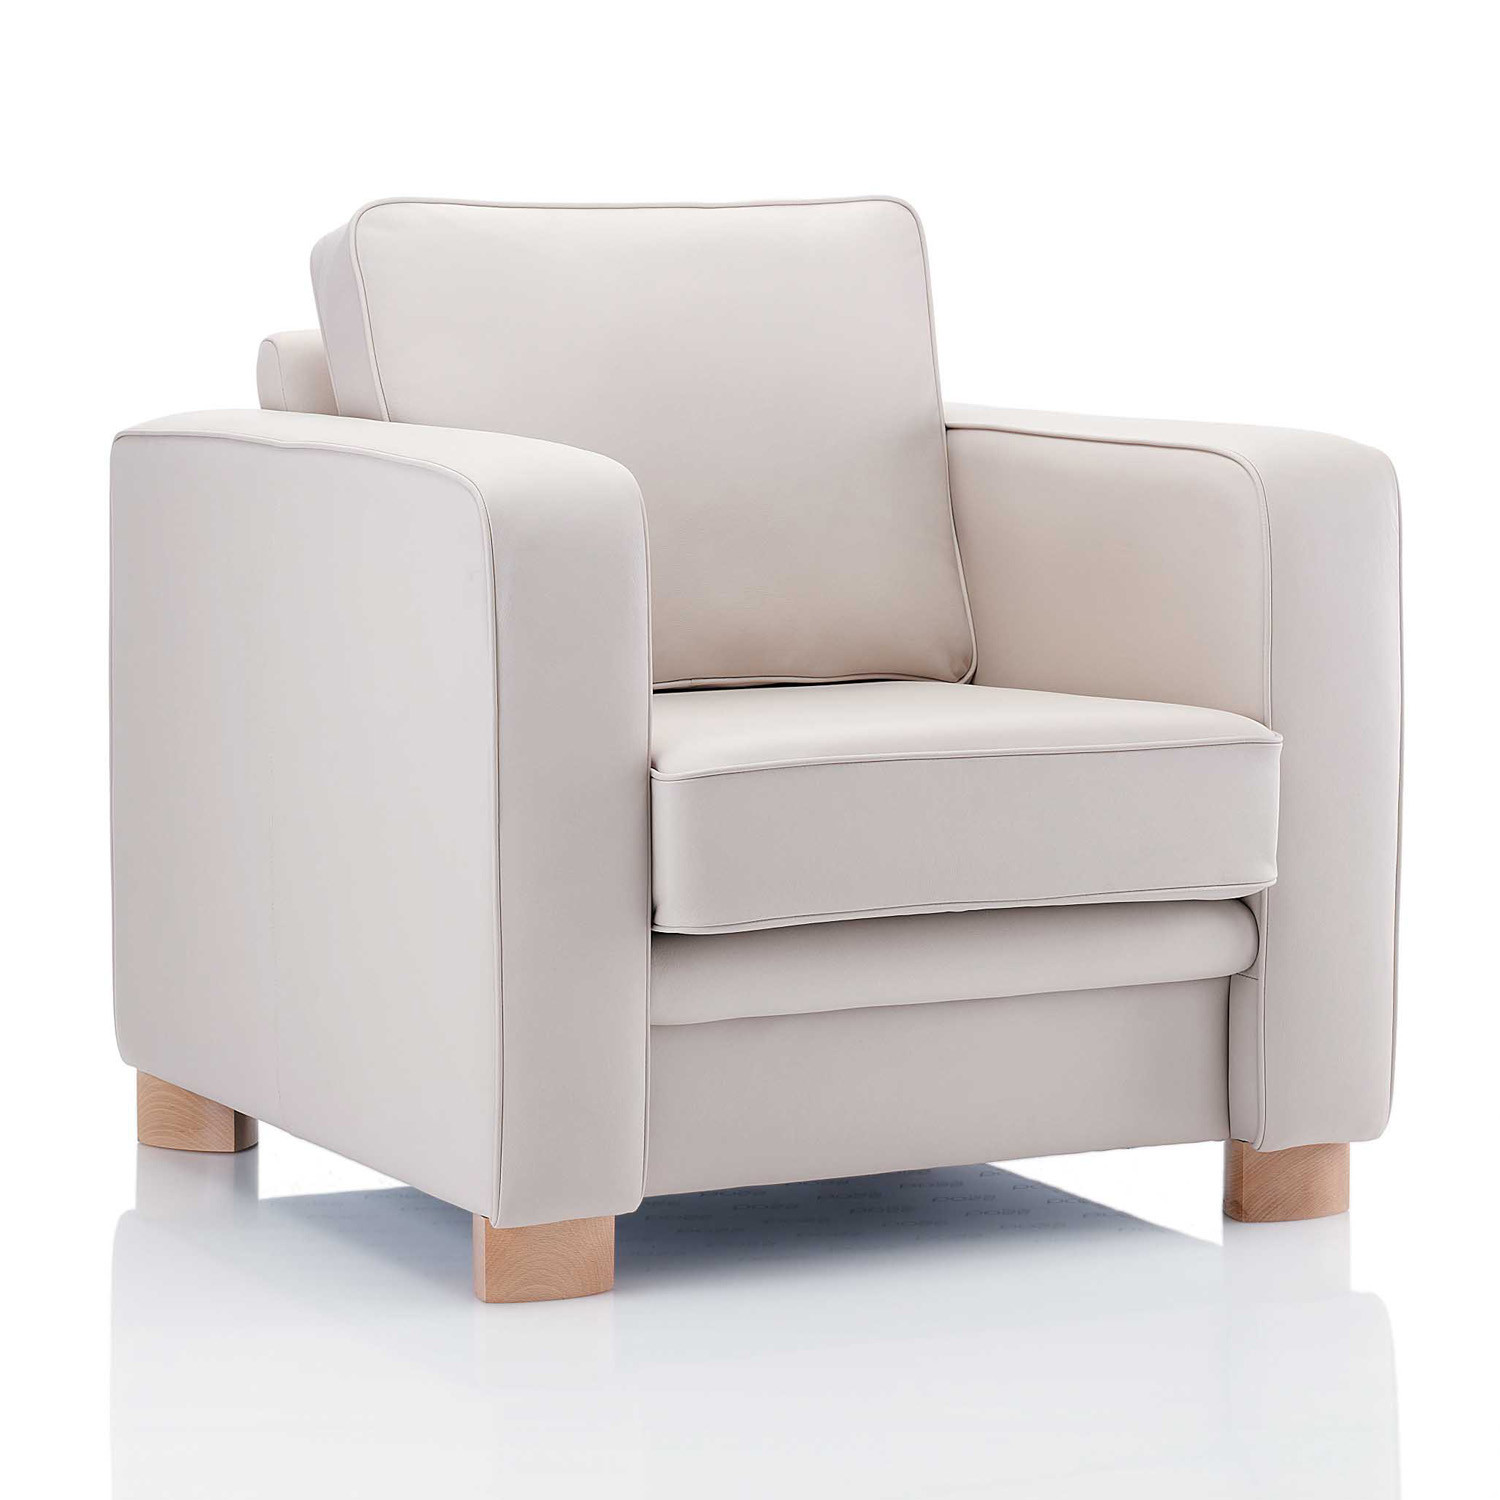 Boxer Fully-Upholstered Armchair